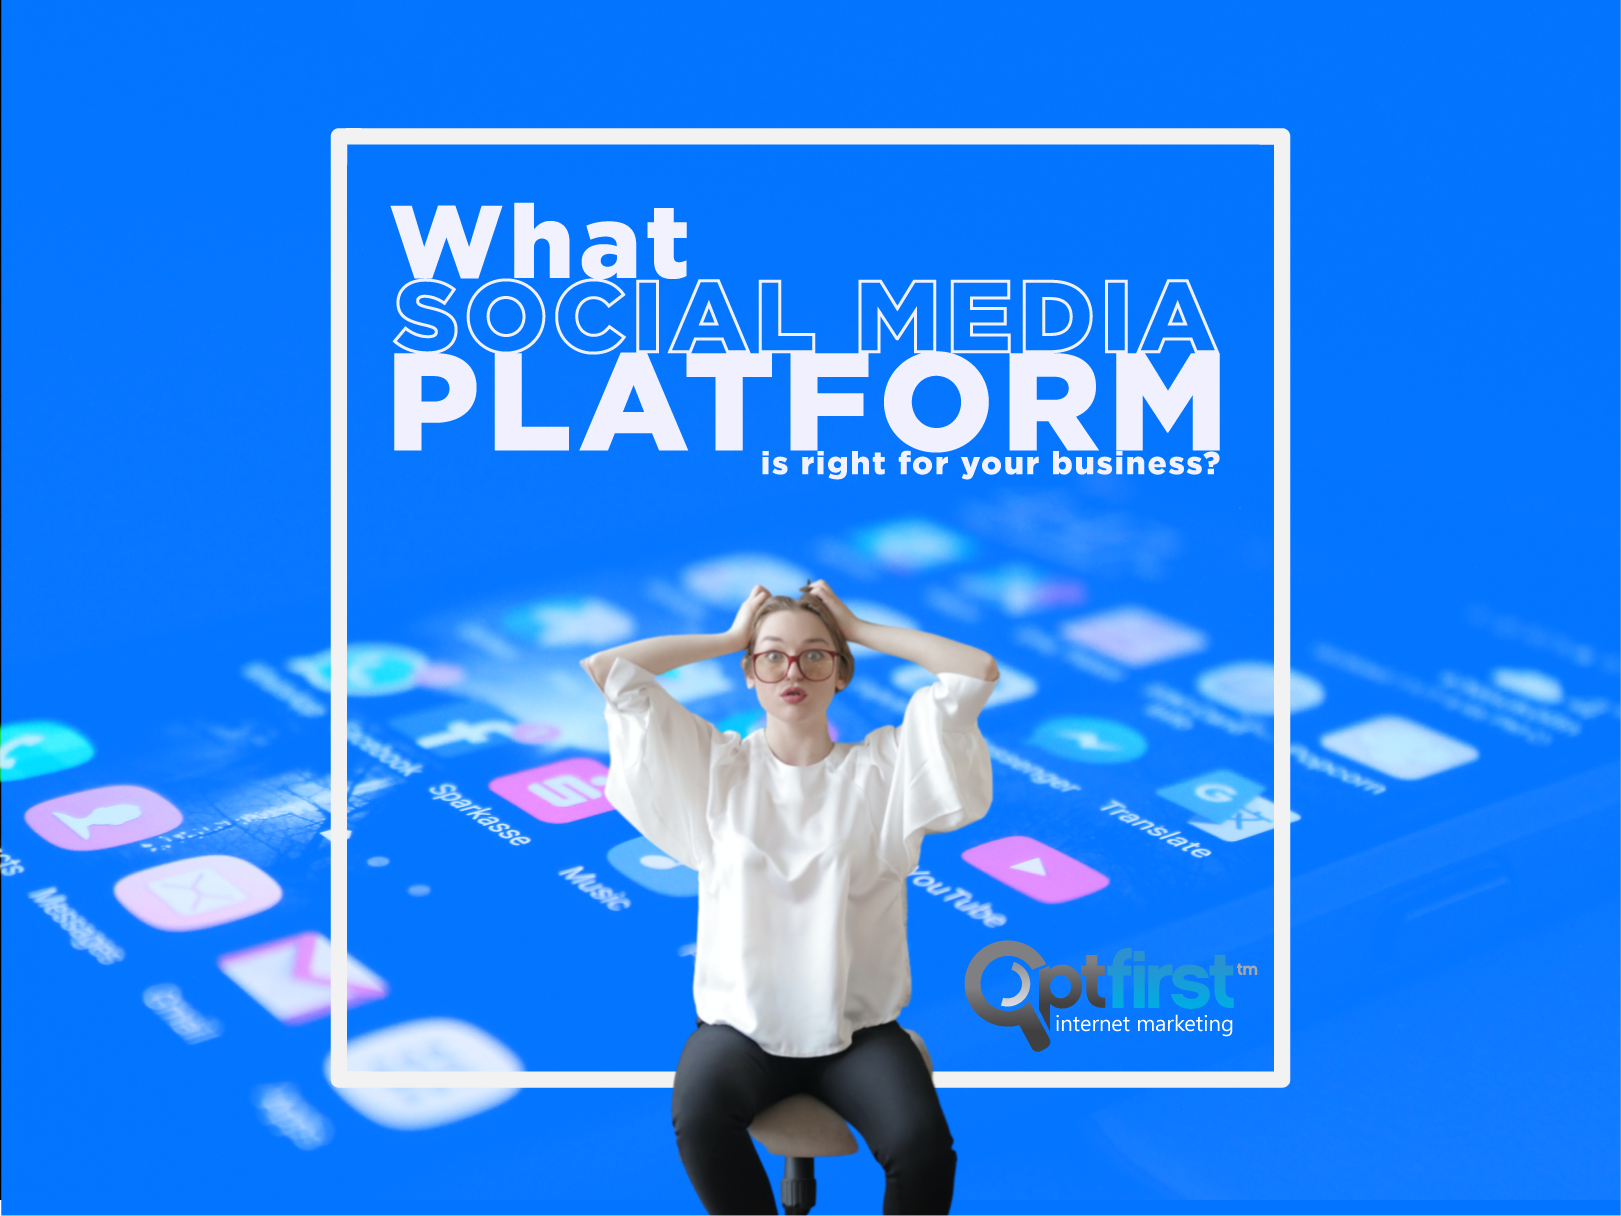 What social media platform is right for your business?